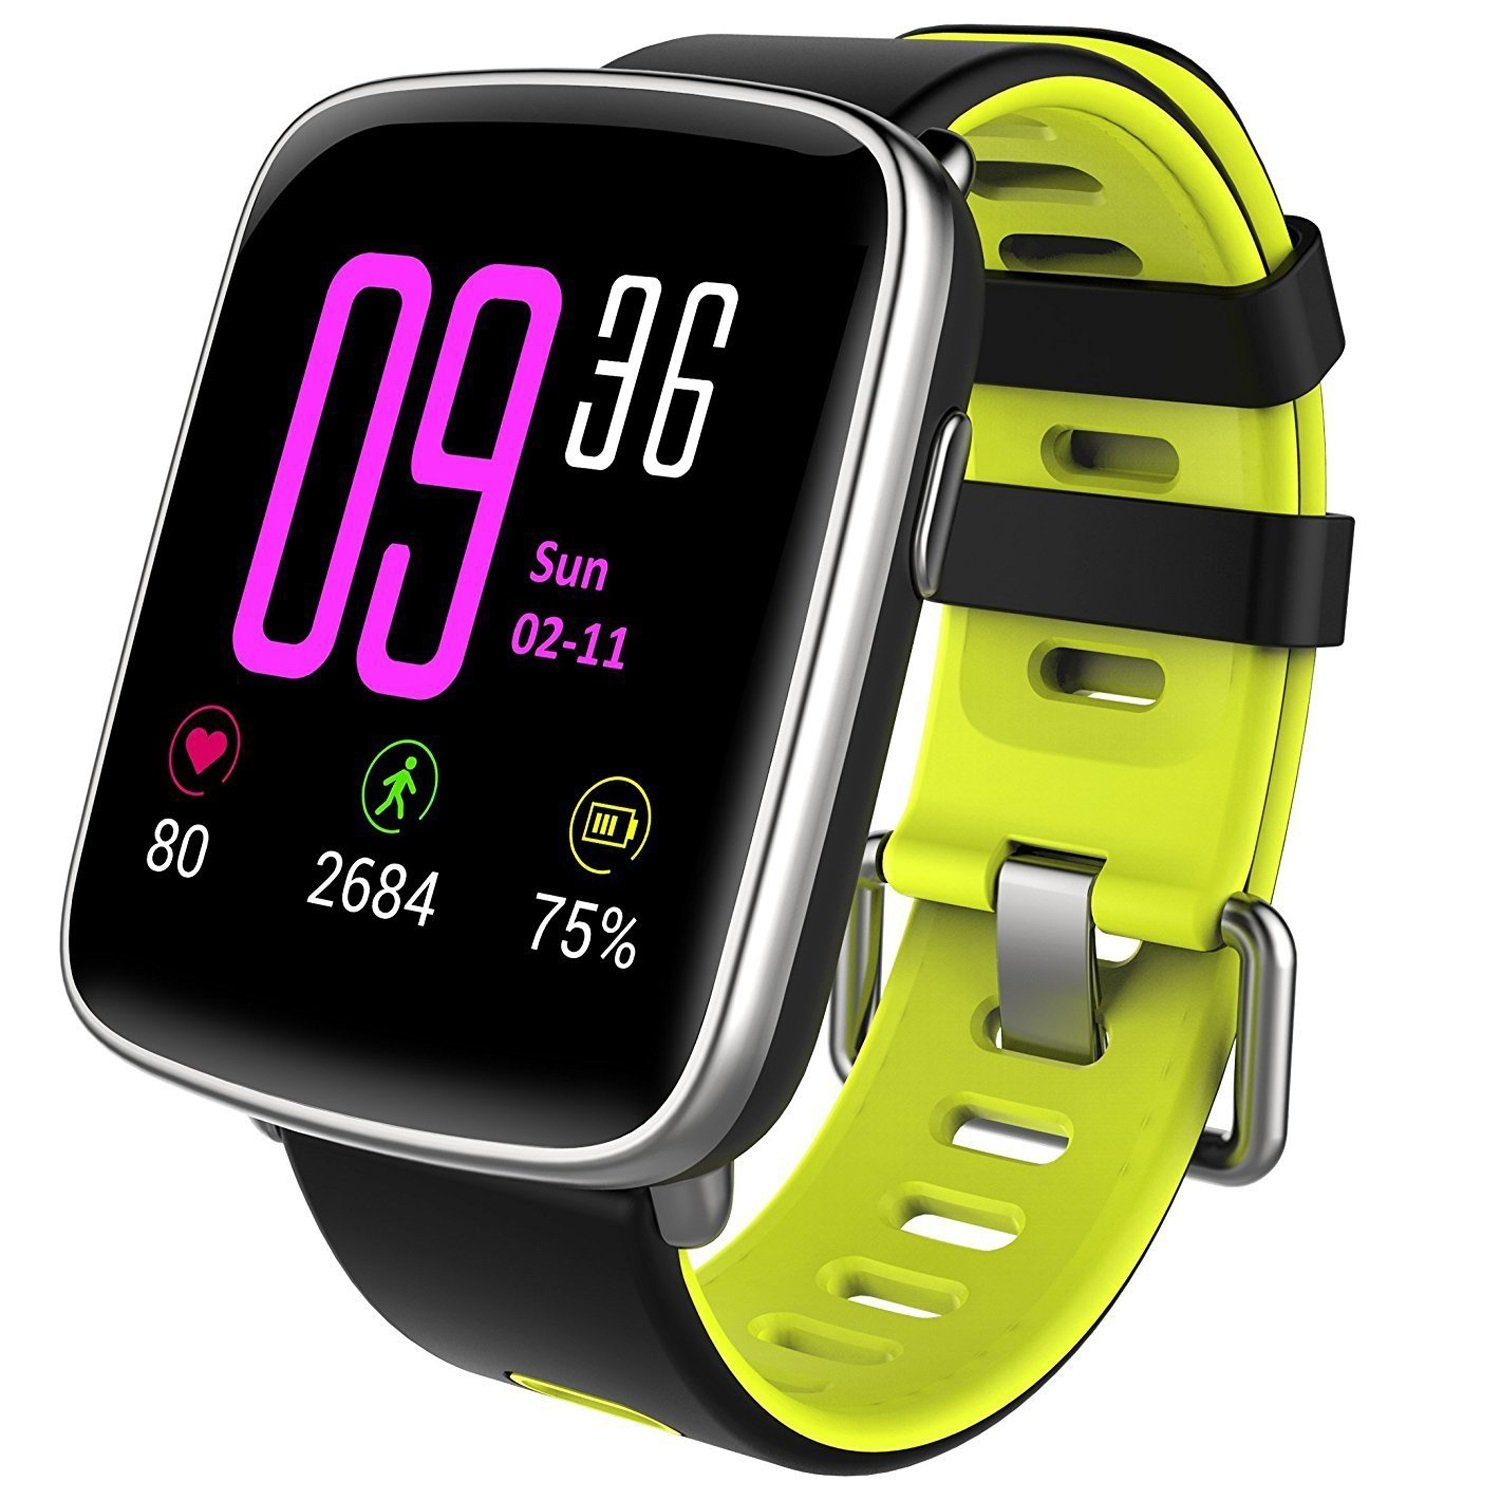 Amazon.com: C-Xka Smartwatch,silicone Smart IP68 ...